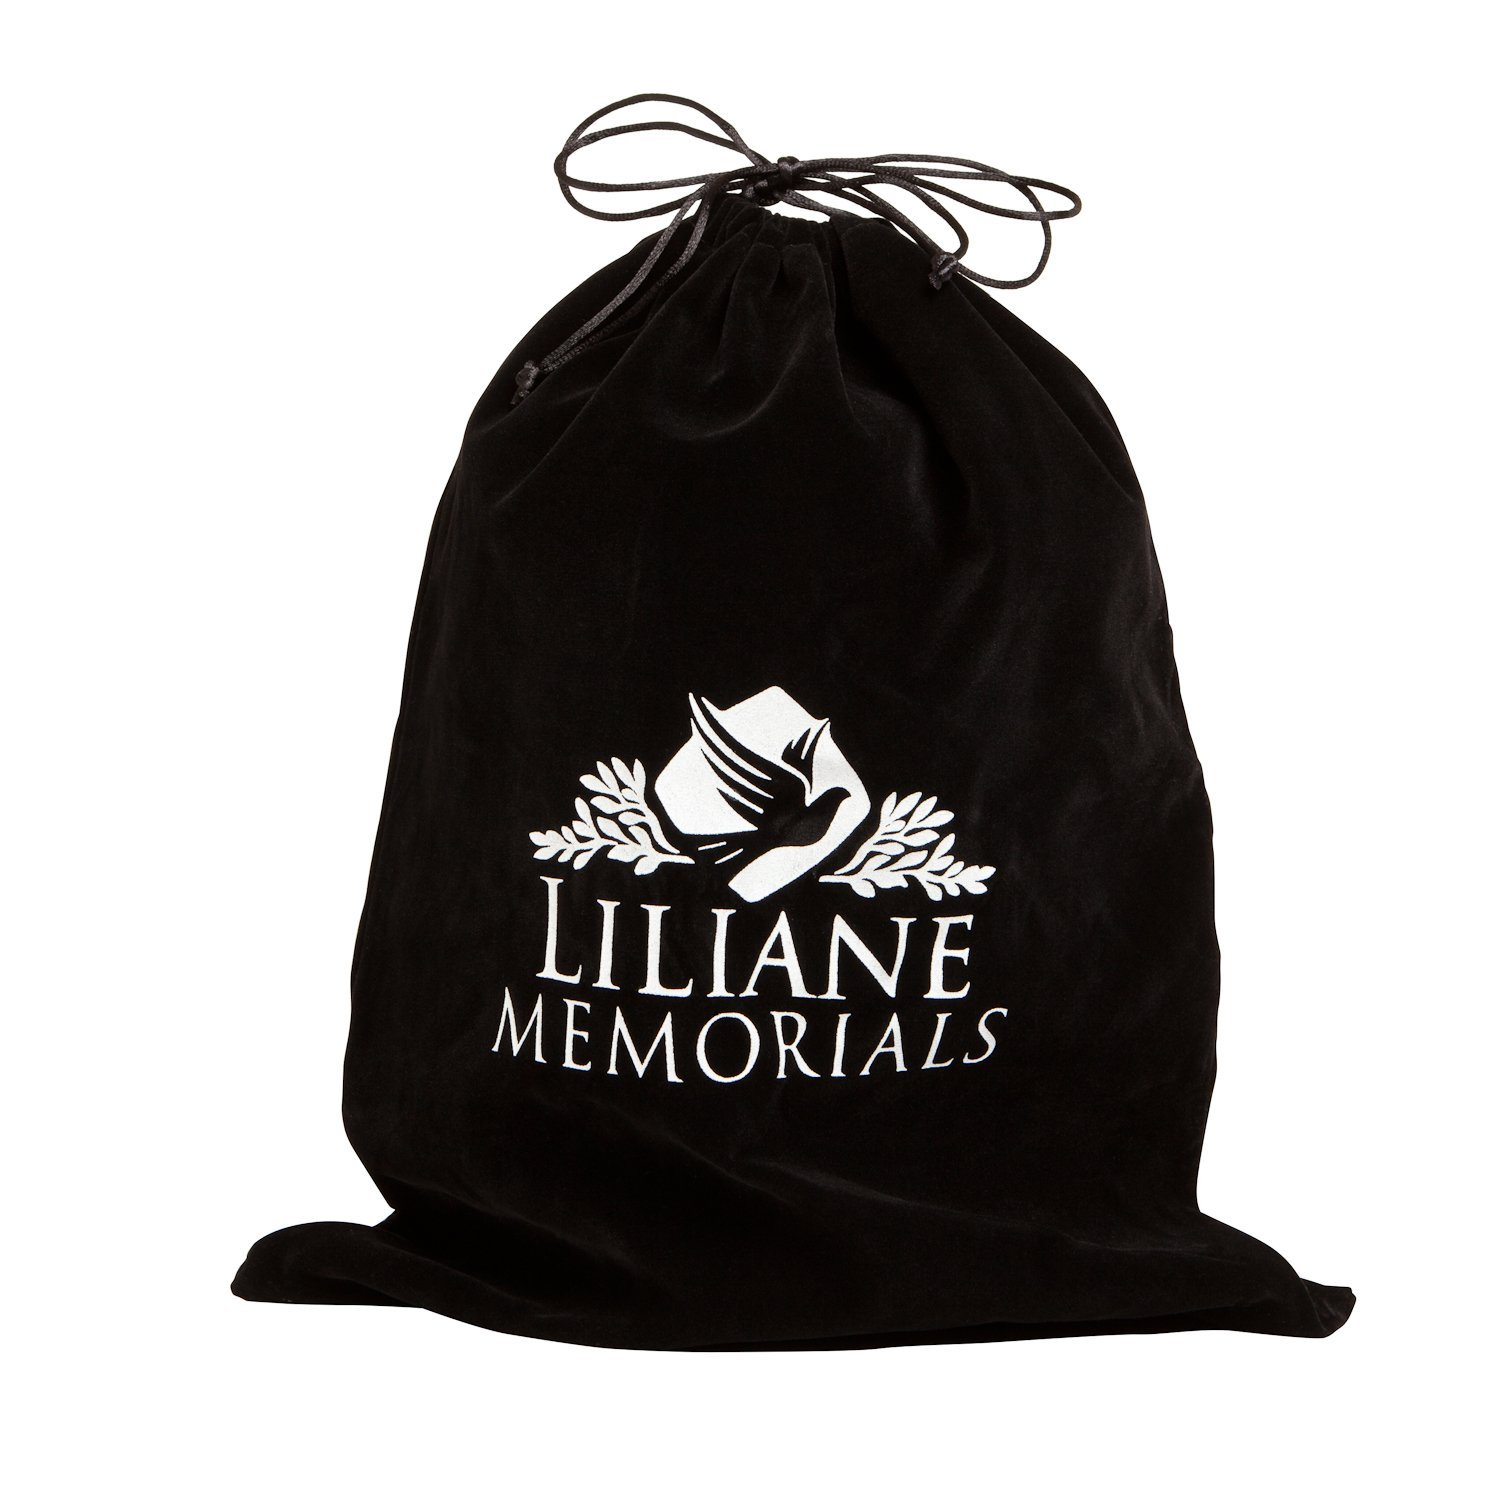 Bronze Funeral Urn by Liliane Memorials - Cremation Urn for Human Ashes - Hand Made in Brass - Suitable for Cemetery Burial or Niche - Large Size fits remains of Adults up to 200 lbs - Rosario Model